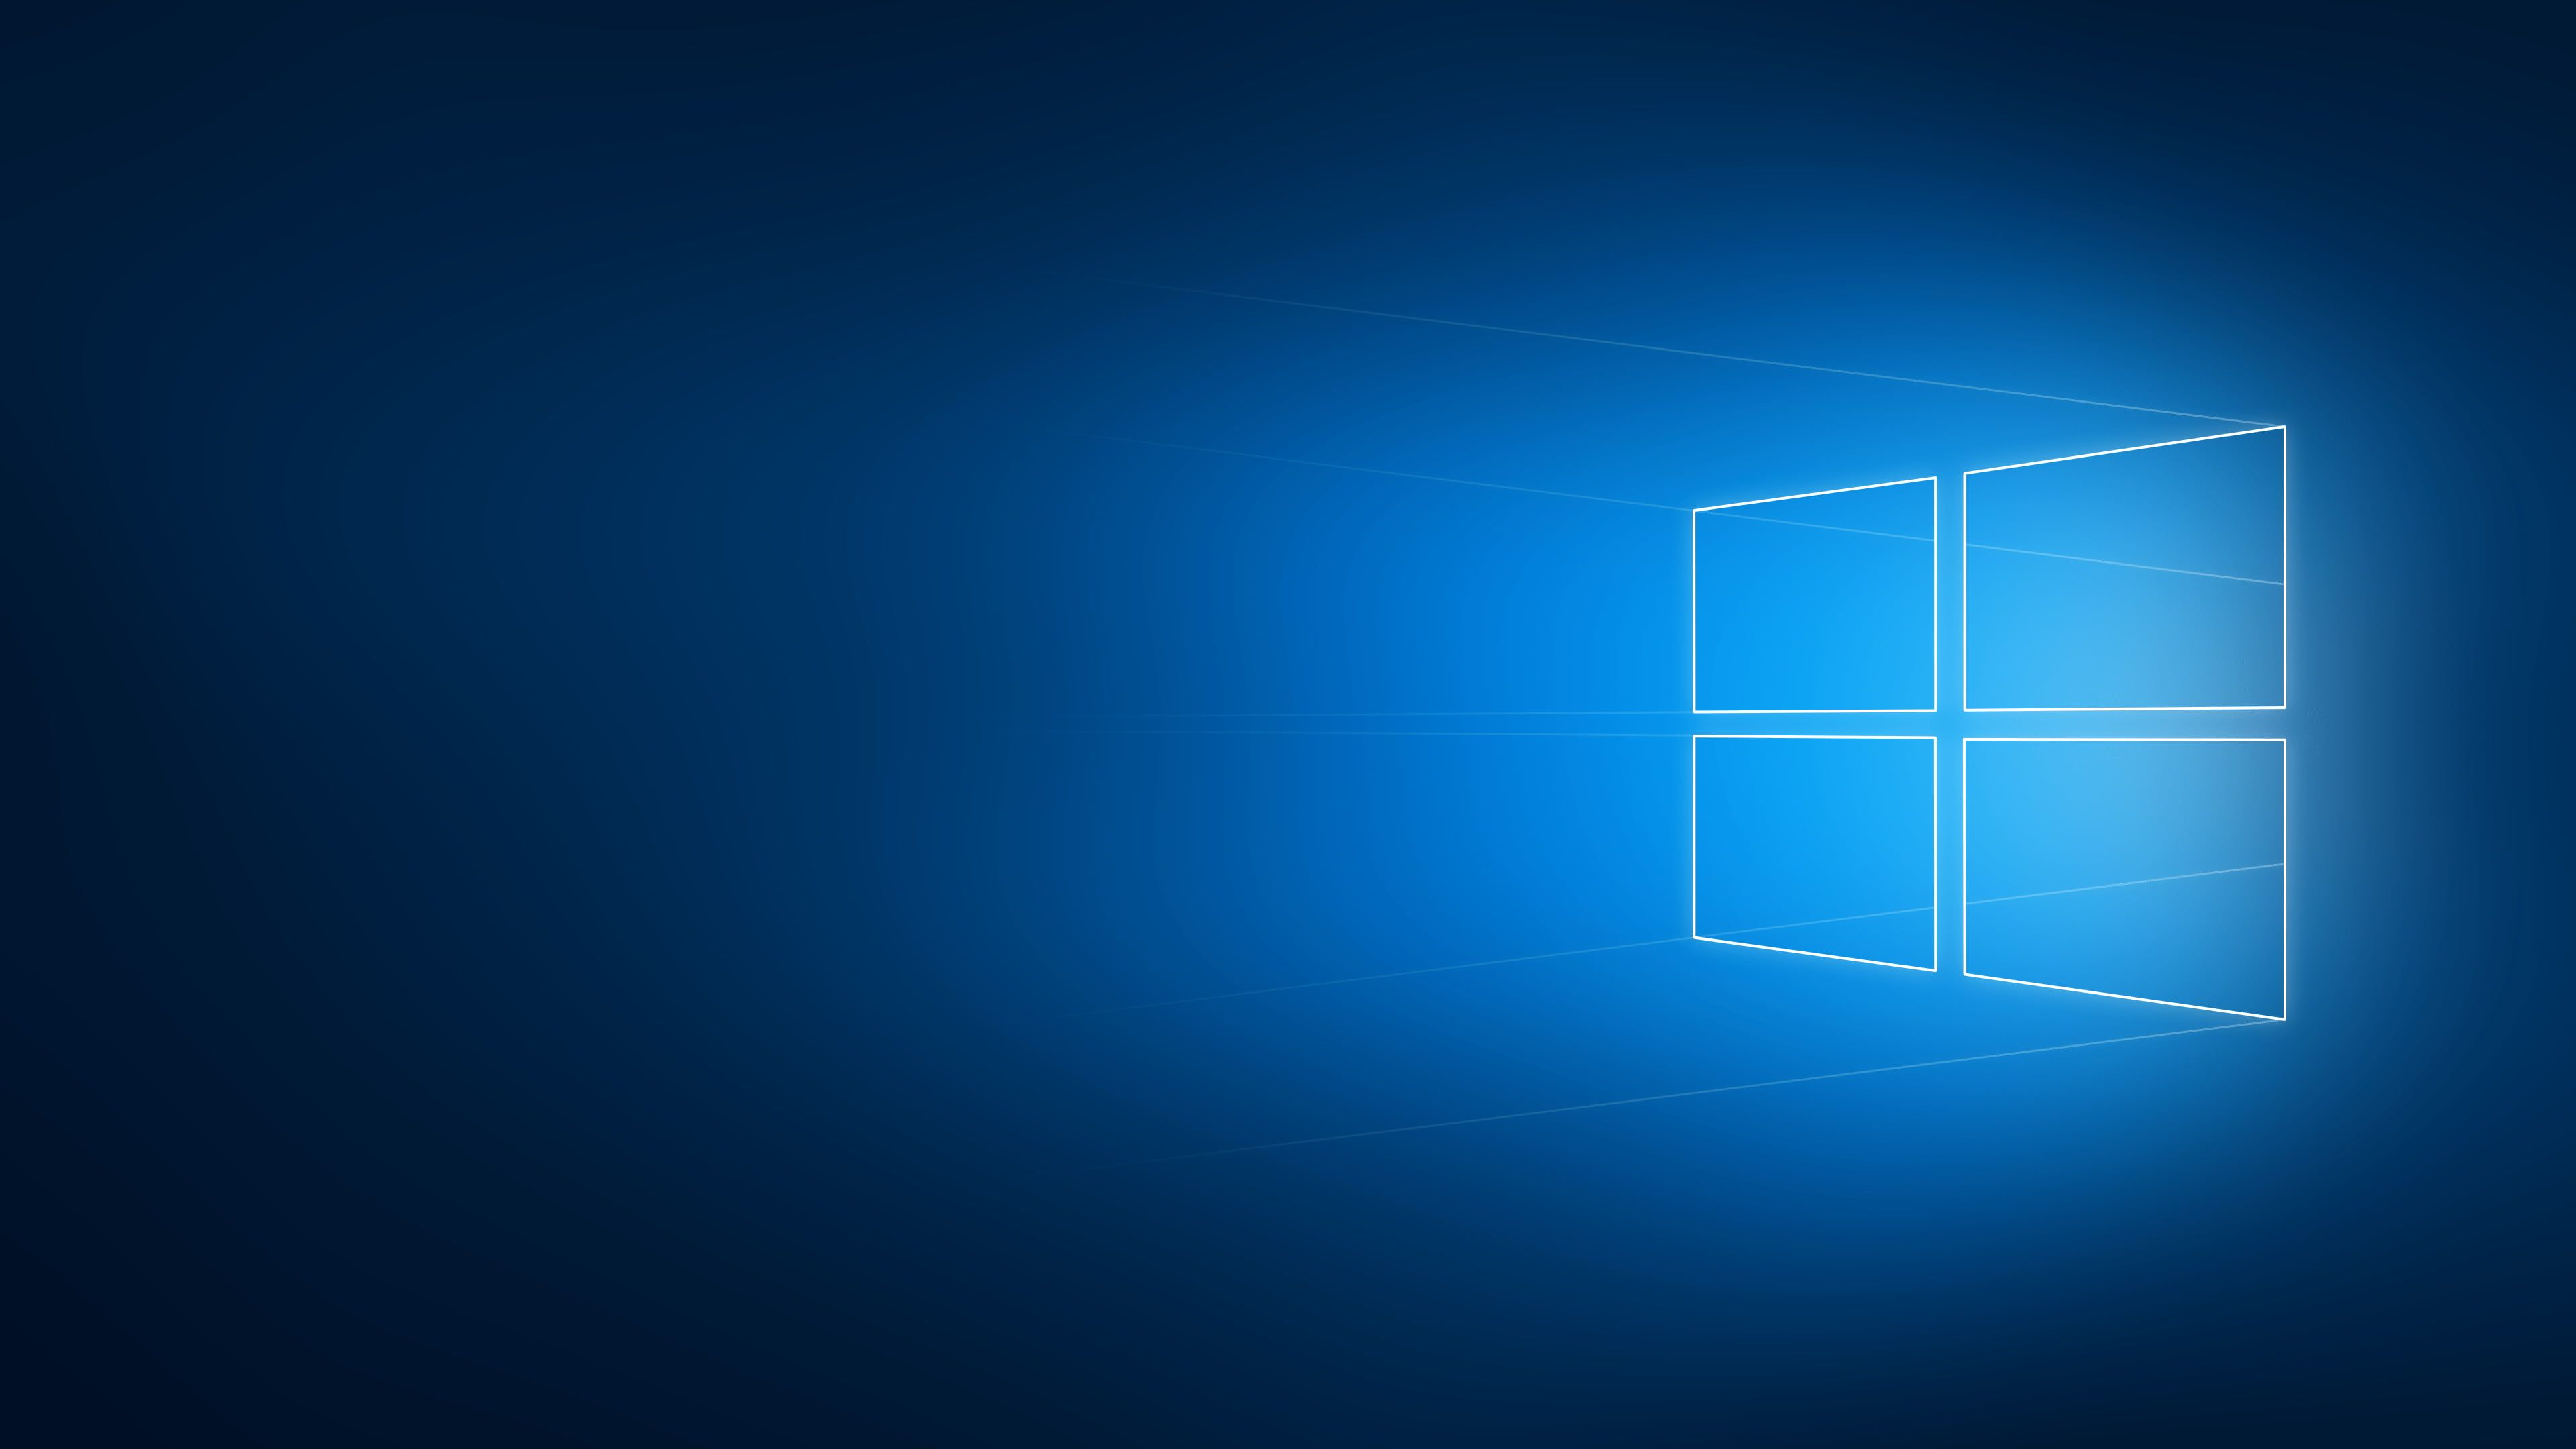 Windows Logo Windows 10 Logo Minimalism Blurred Geometry Operating System Microsoft Windows 4k Wallpaper Hdwallpaper Deskt Windows 10 Windows Microsoft